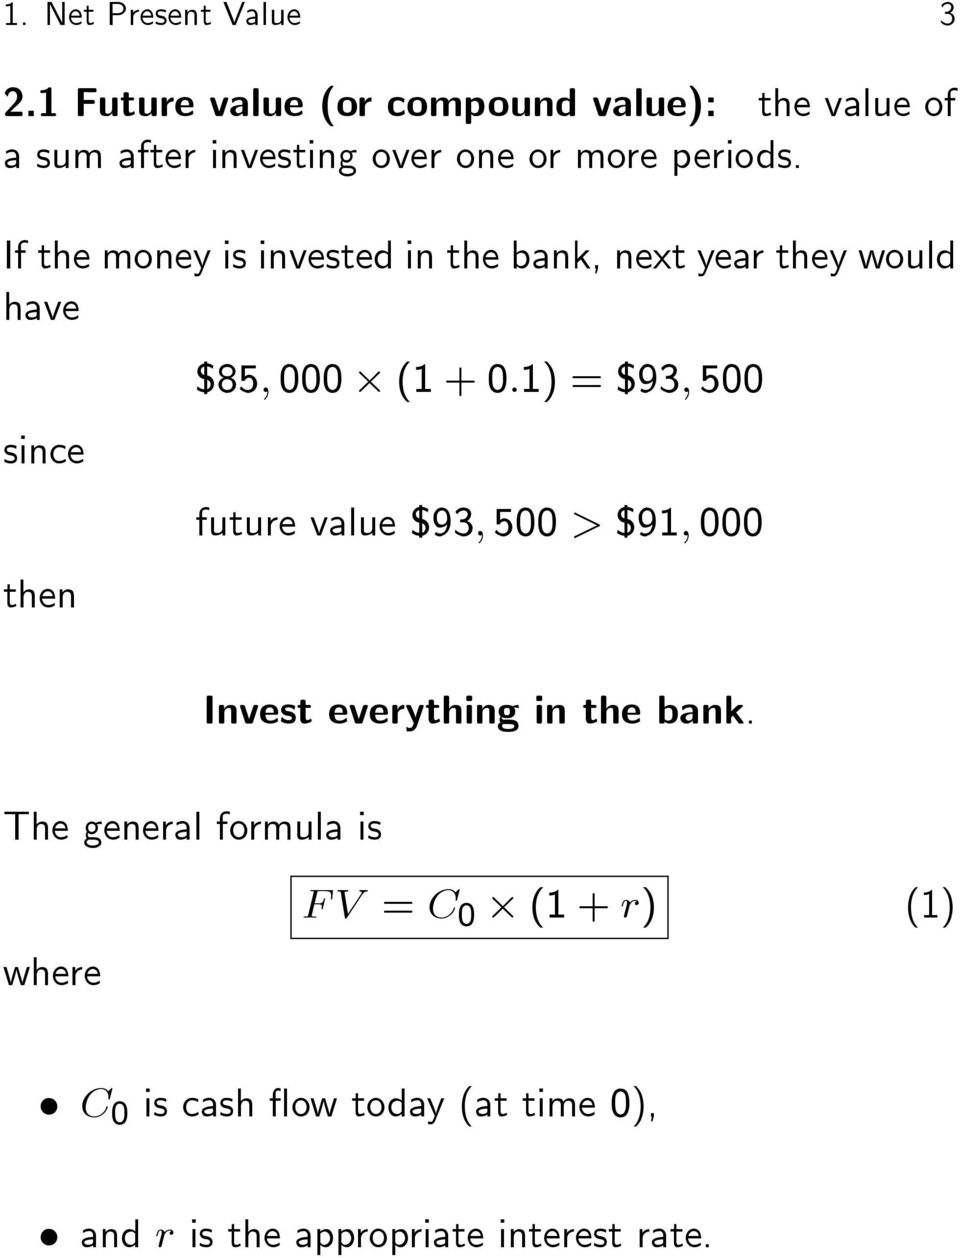 If the money is invested in the bank, next year they would have since then $85; 000 (1 + 0:1) = $93;